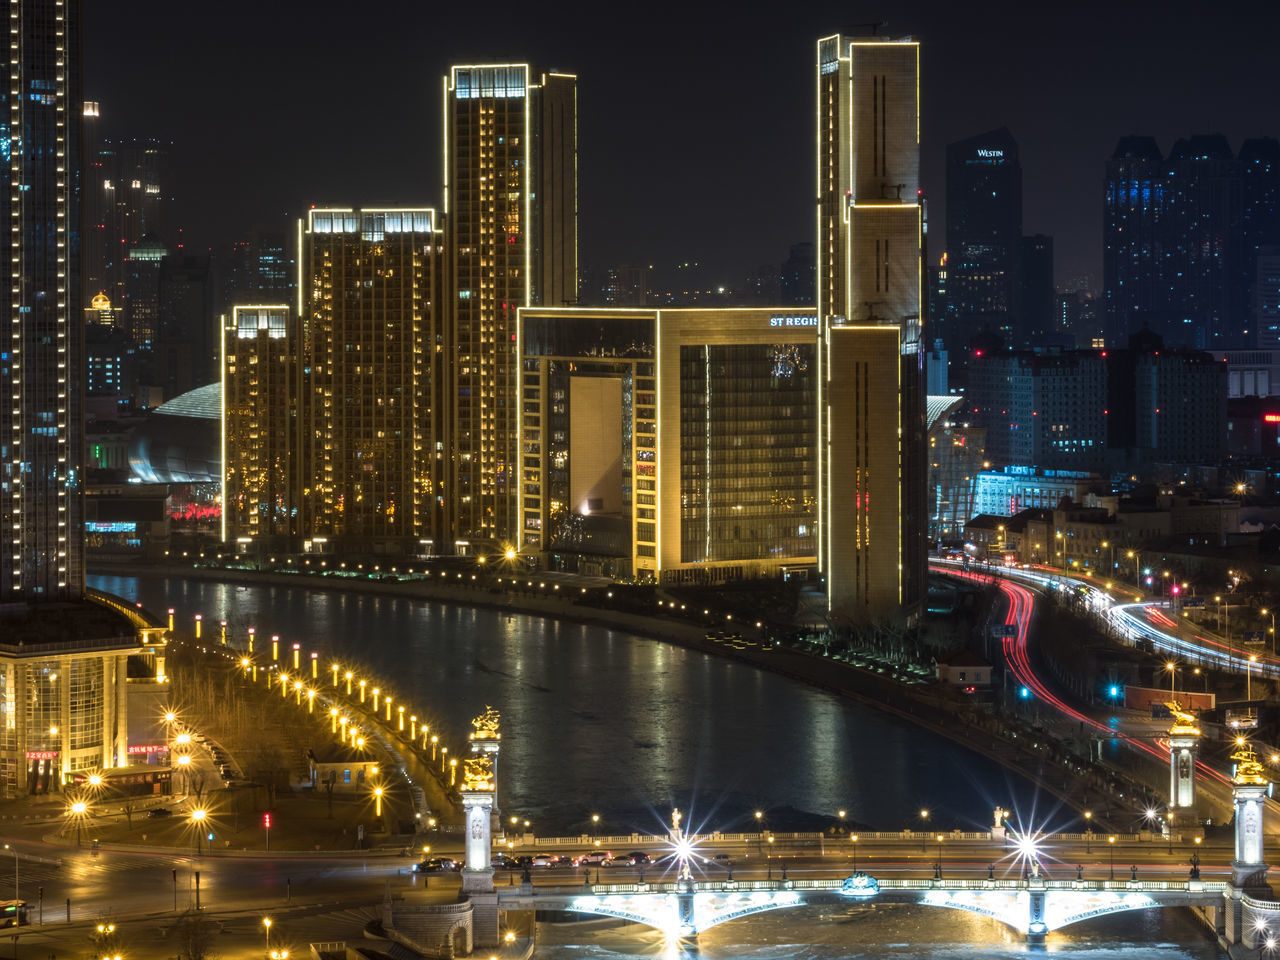 St. Regis Tianjin hotel next to 海河 Haihe river. Aerial Aerial Shot Aerial View Architecture Building Exterior China City City Lights Cityscape Cityscape Hotel Long Exposure M.Zuiko 45mm 1:1,8 Modern Architecture Night Olympus OM-D E-M5 Mk.II River Skyscraper Slow Shutter St. Regis Still Life Tianjin Travel Destinations Travel Photography Urban Skyline